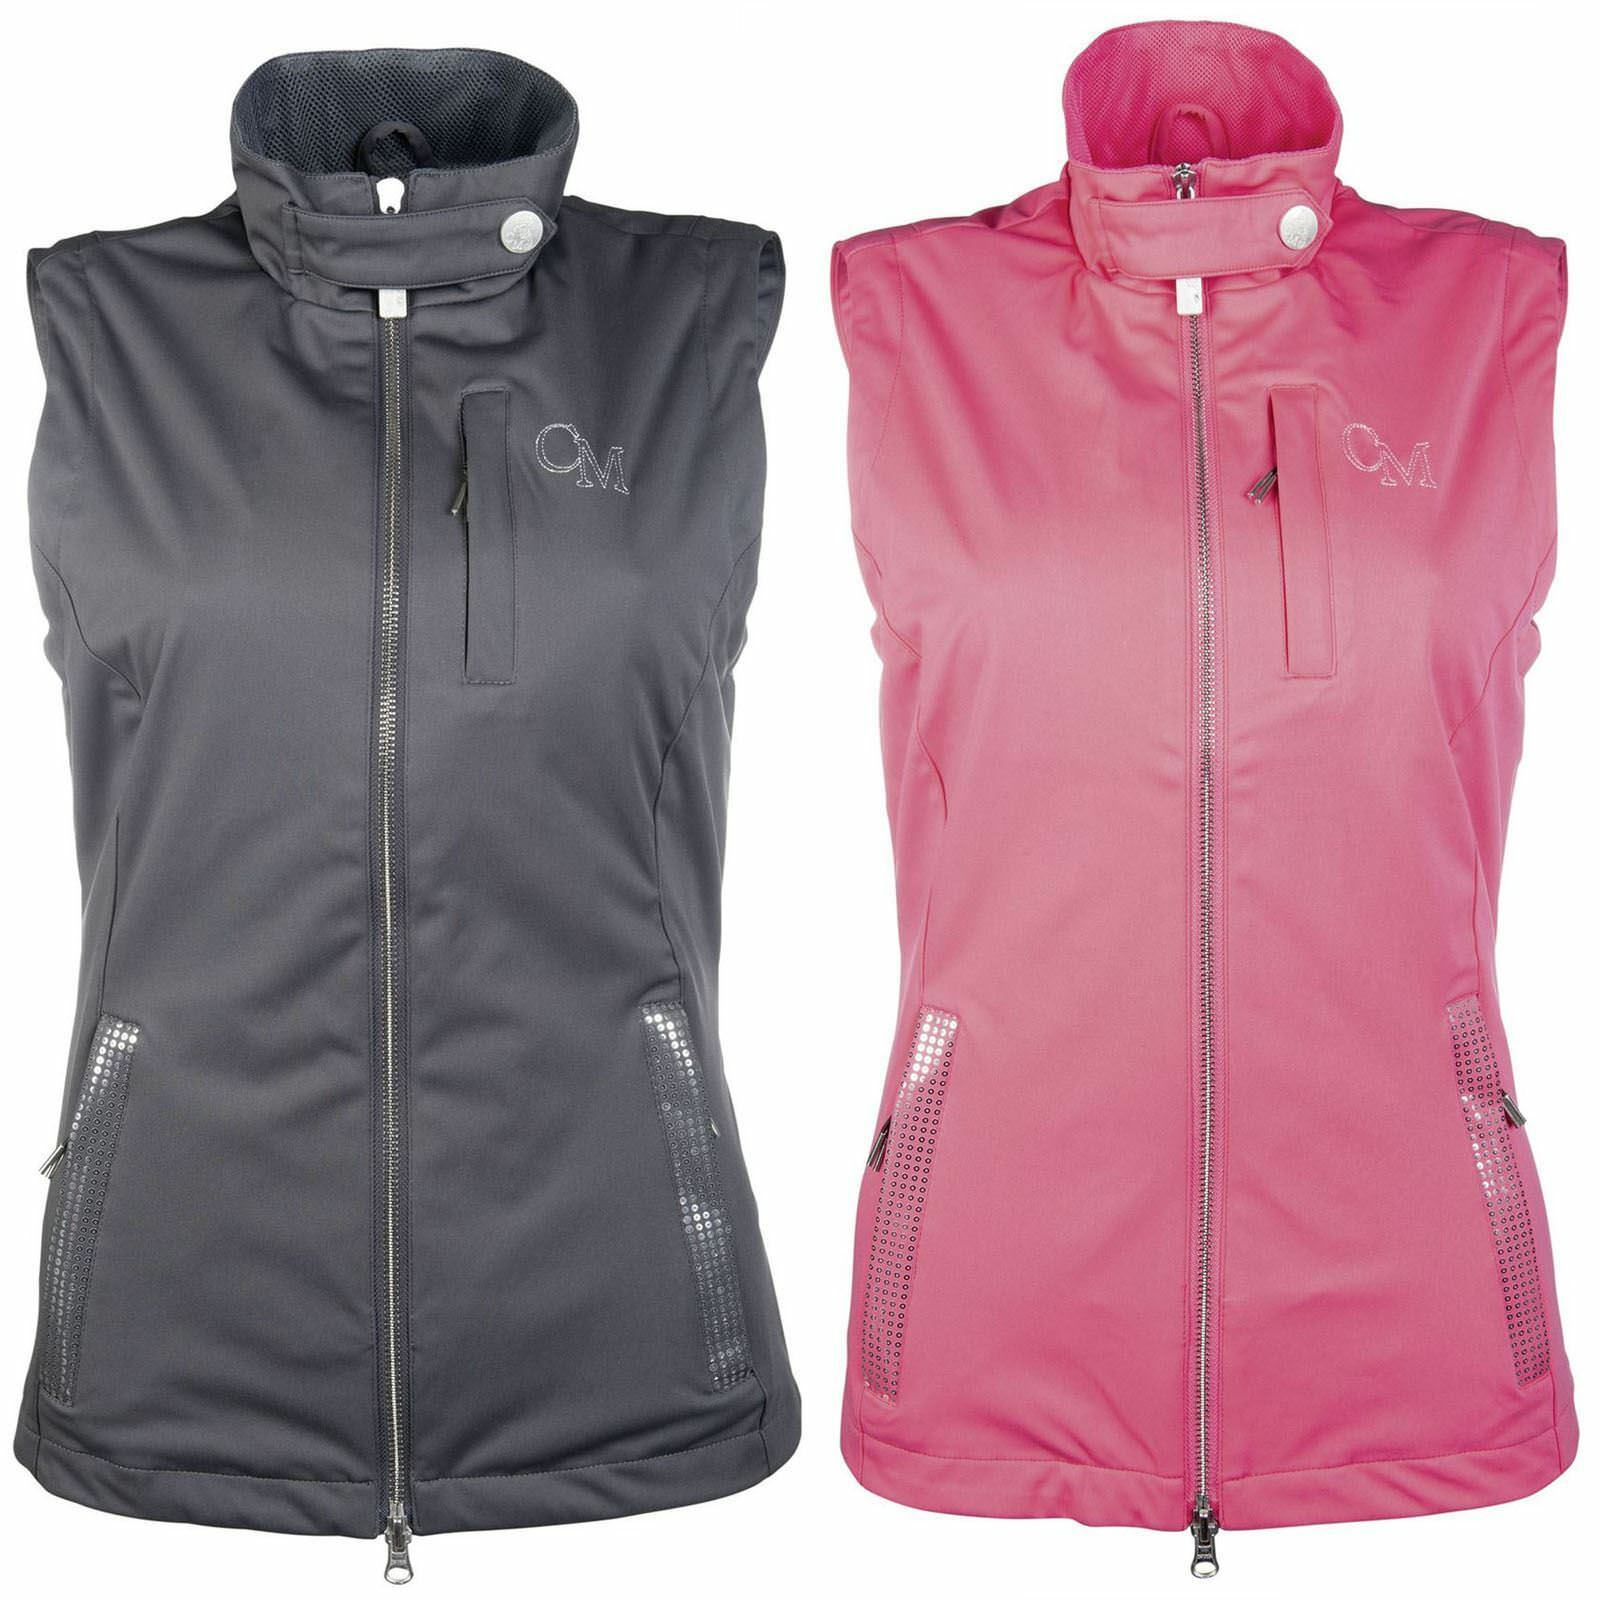 Cavallino Marino Rimini Riding Vest - Ladies Tailor Horse Comfortable Windproof